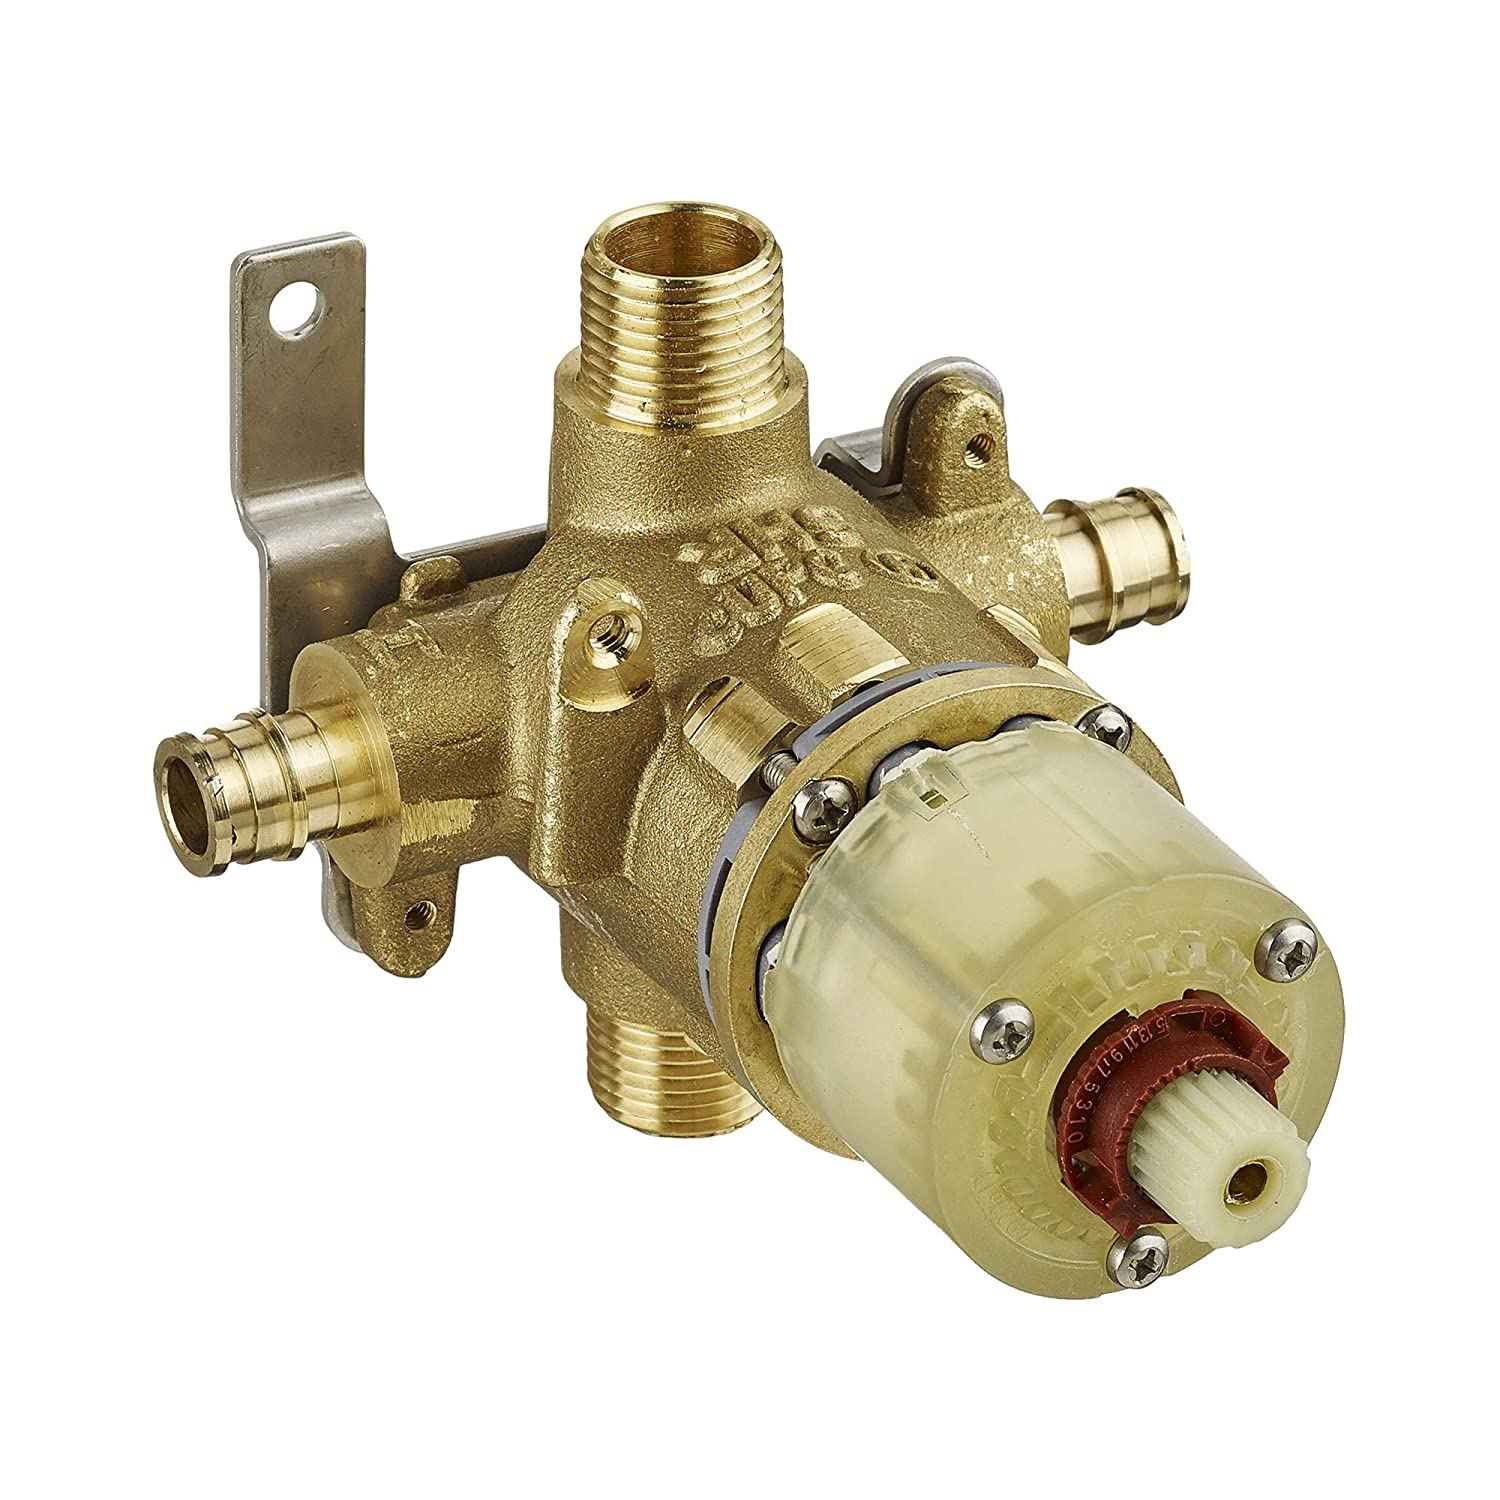 American Standard R118 Pressure Balance Rough Valve Body Only with PEX